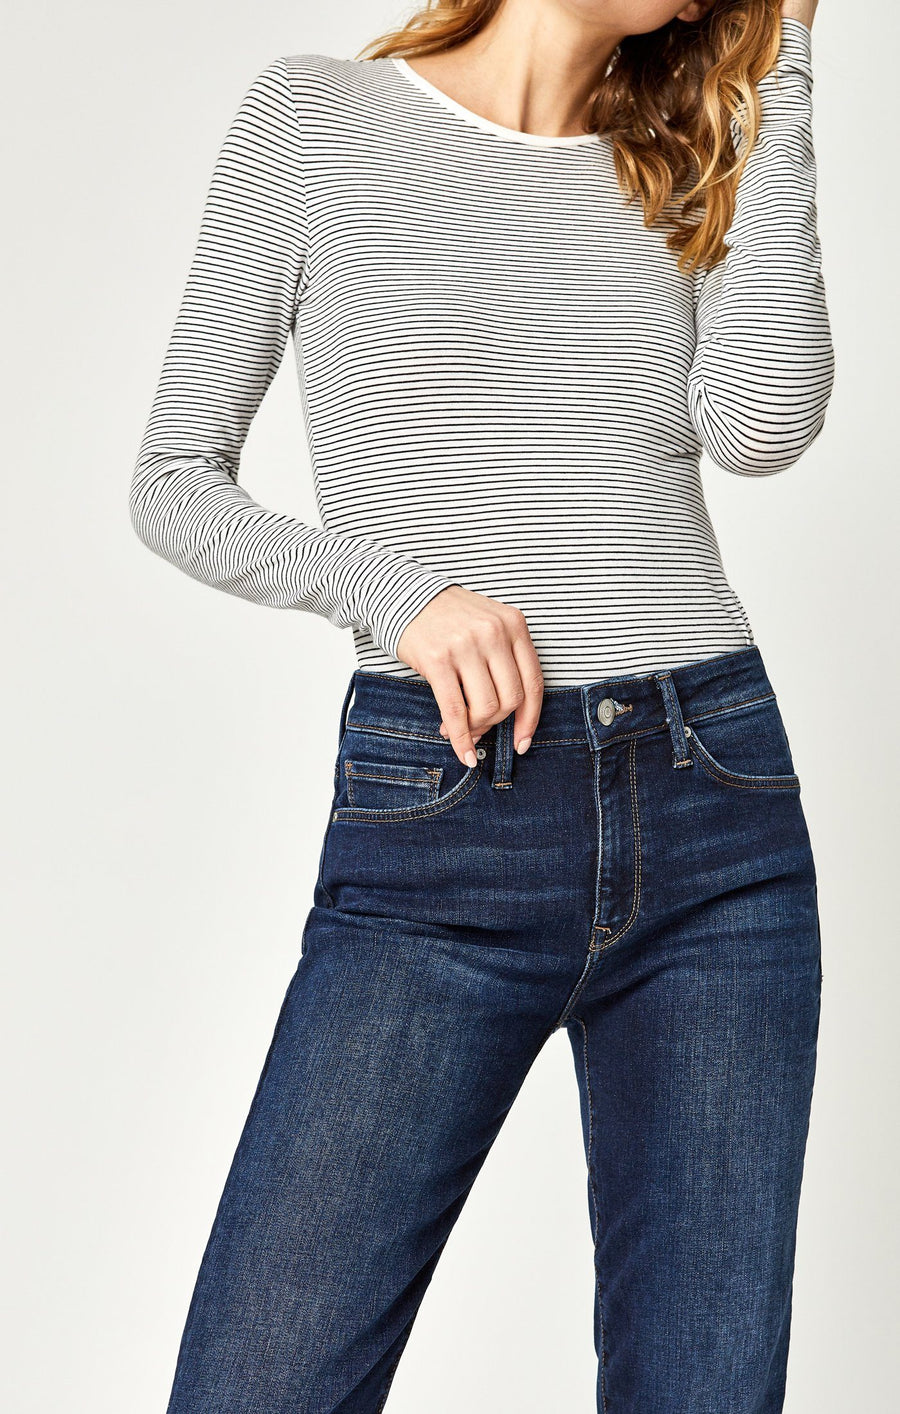 NIKI STRAIGHT CROP IN DEEP FRAYED TRIBECA - Mavi Jeans